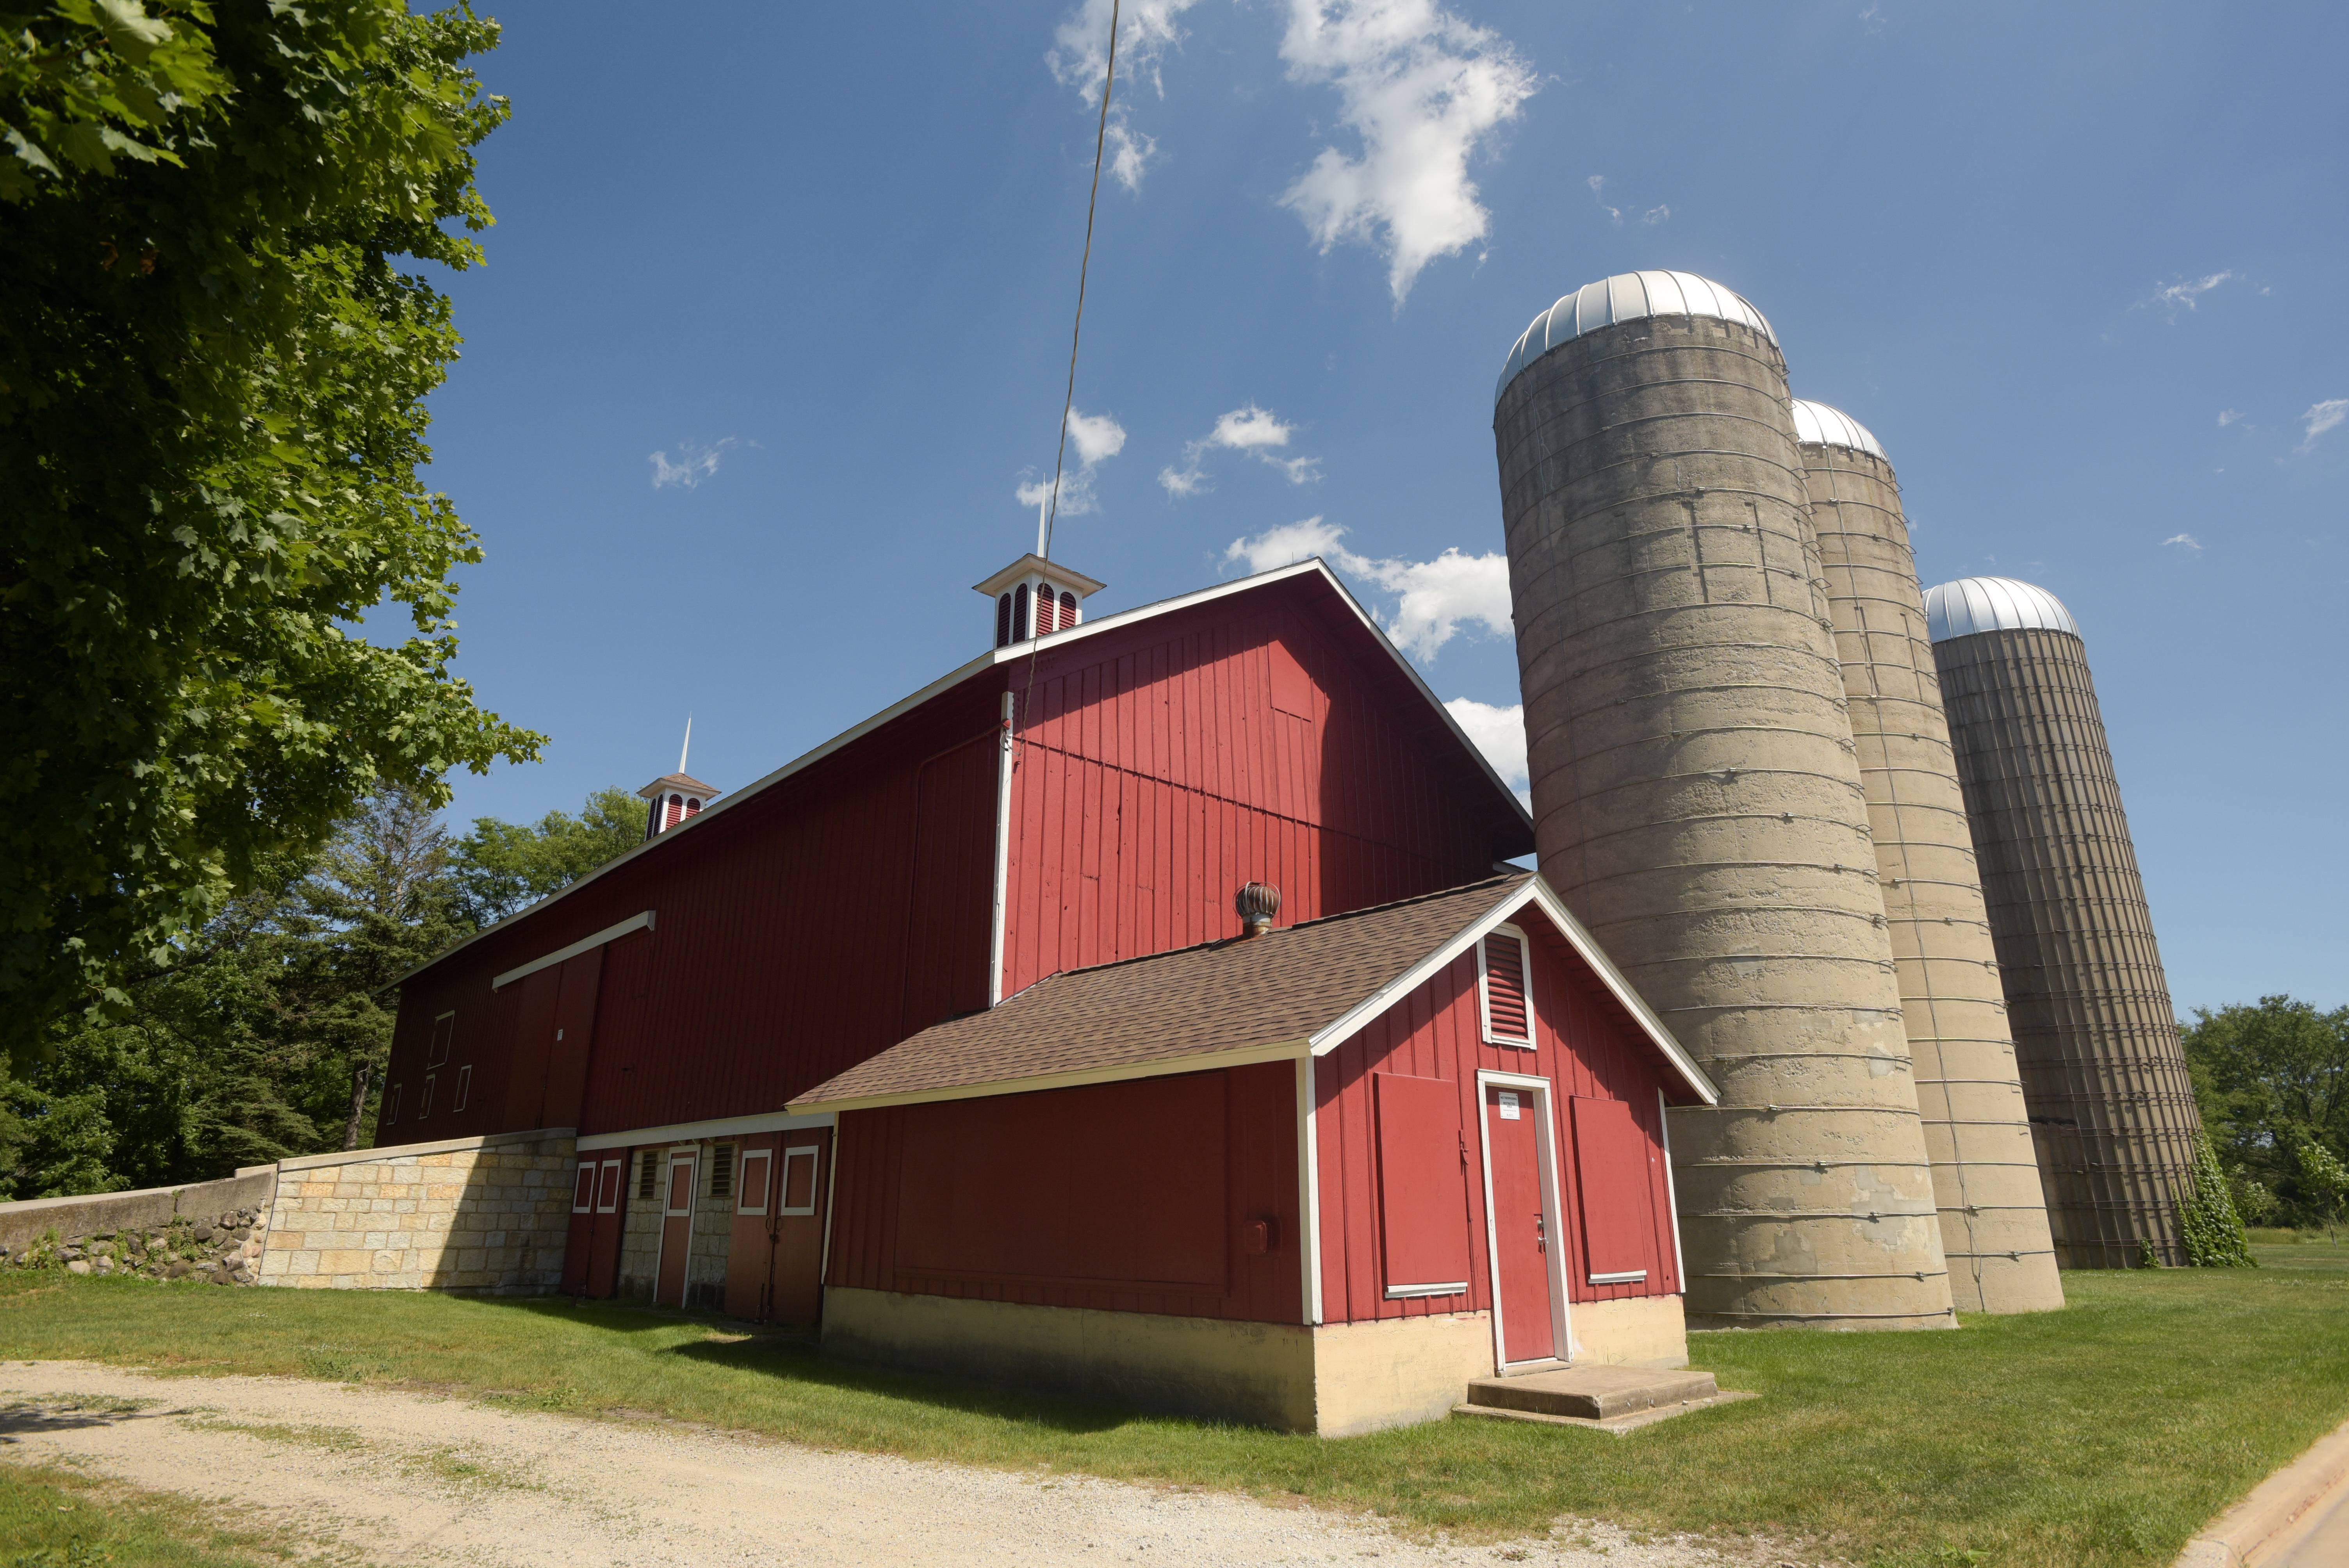 The Greene Farm Barn in Greene Valley Forest Preserve near Naperville is one of two historic buildings the DuPage County Forest Preserve District wants to repair. A formal vote by commissioners is expected to happen next week.